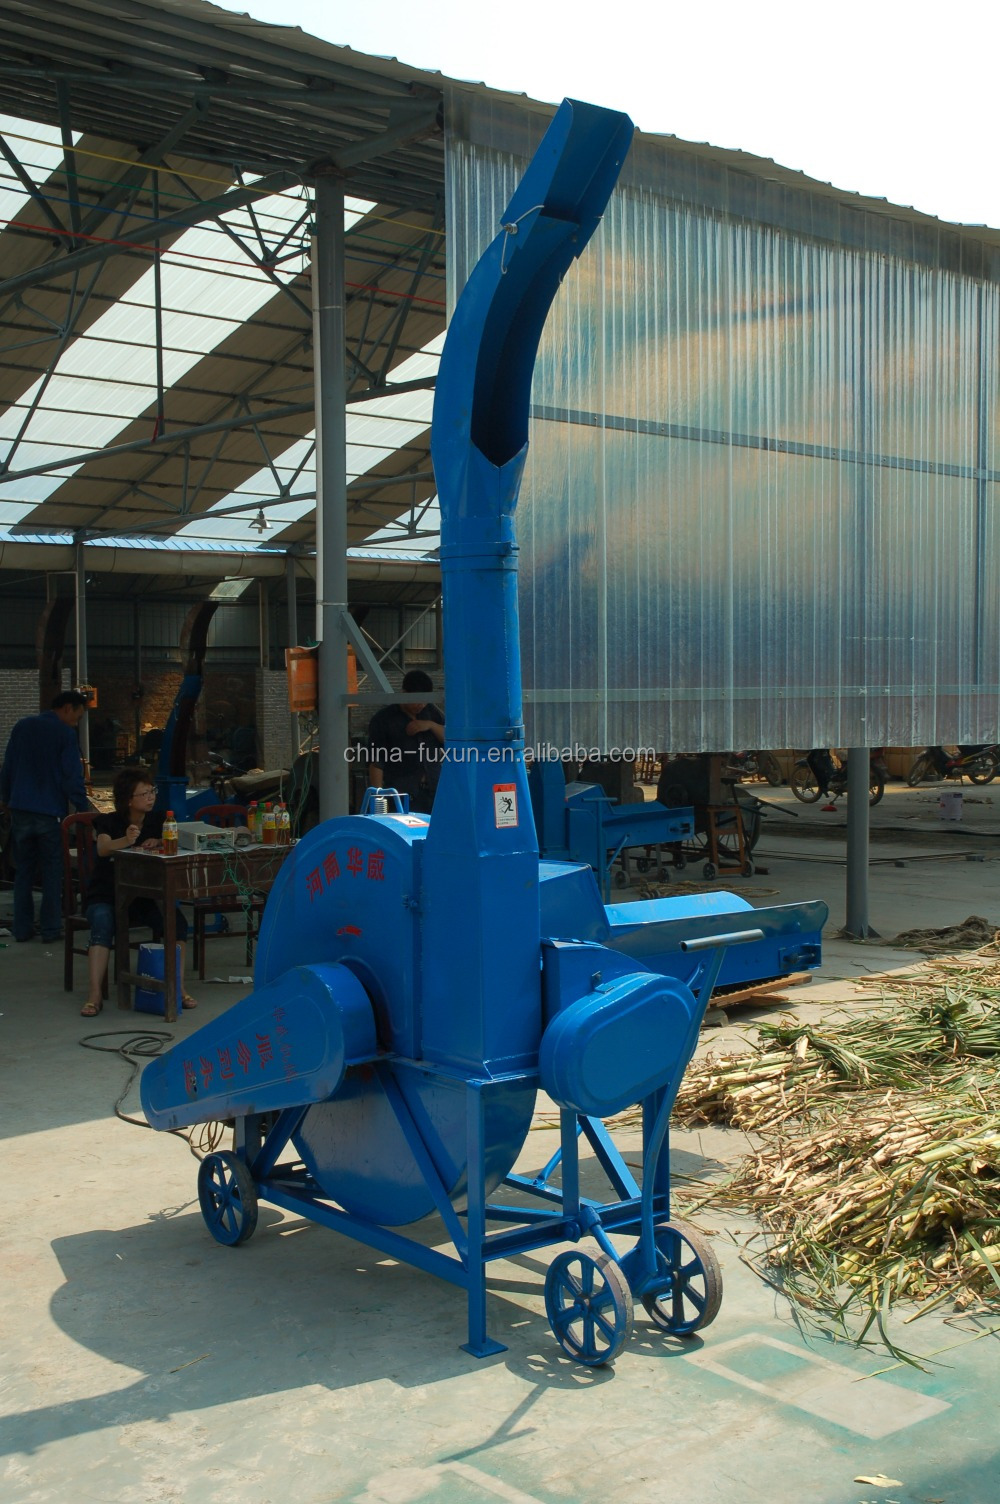 Professional grass cutter/grass chopper machine for animals feed